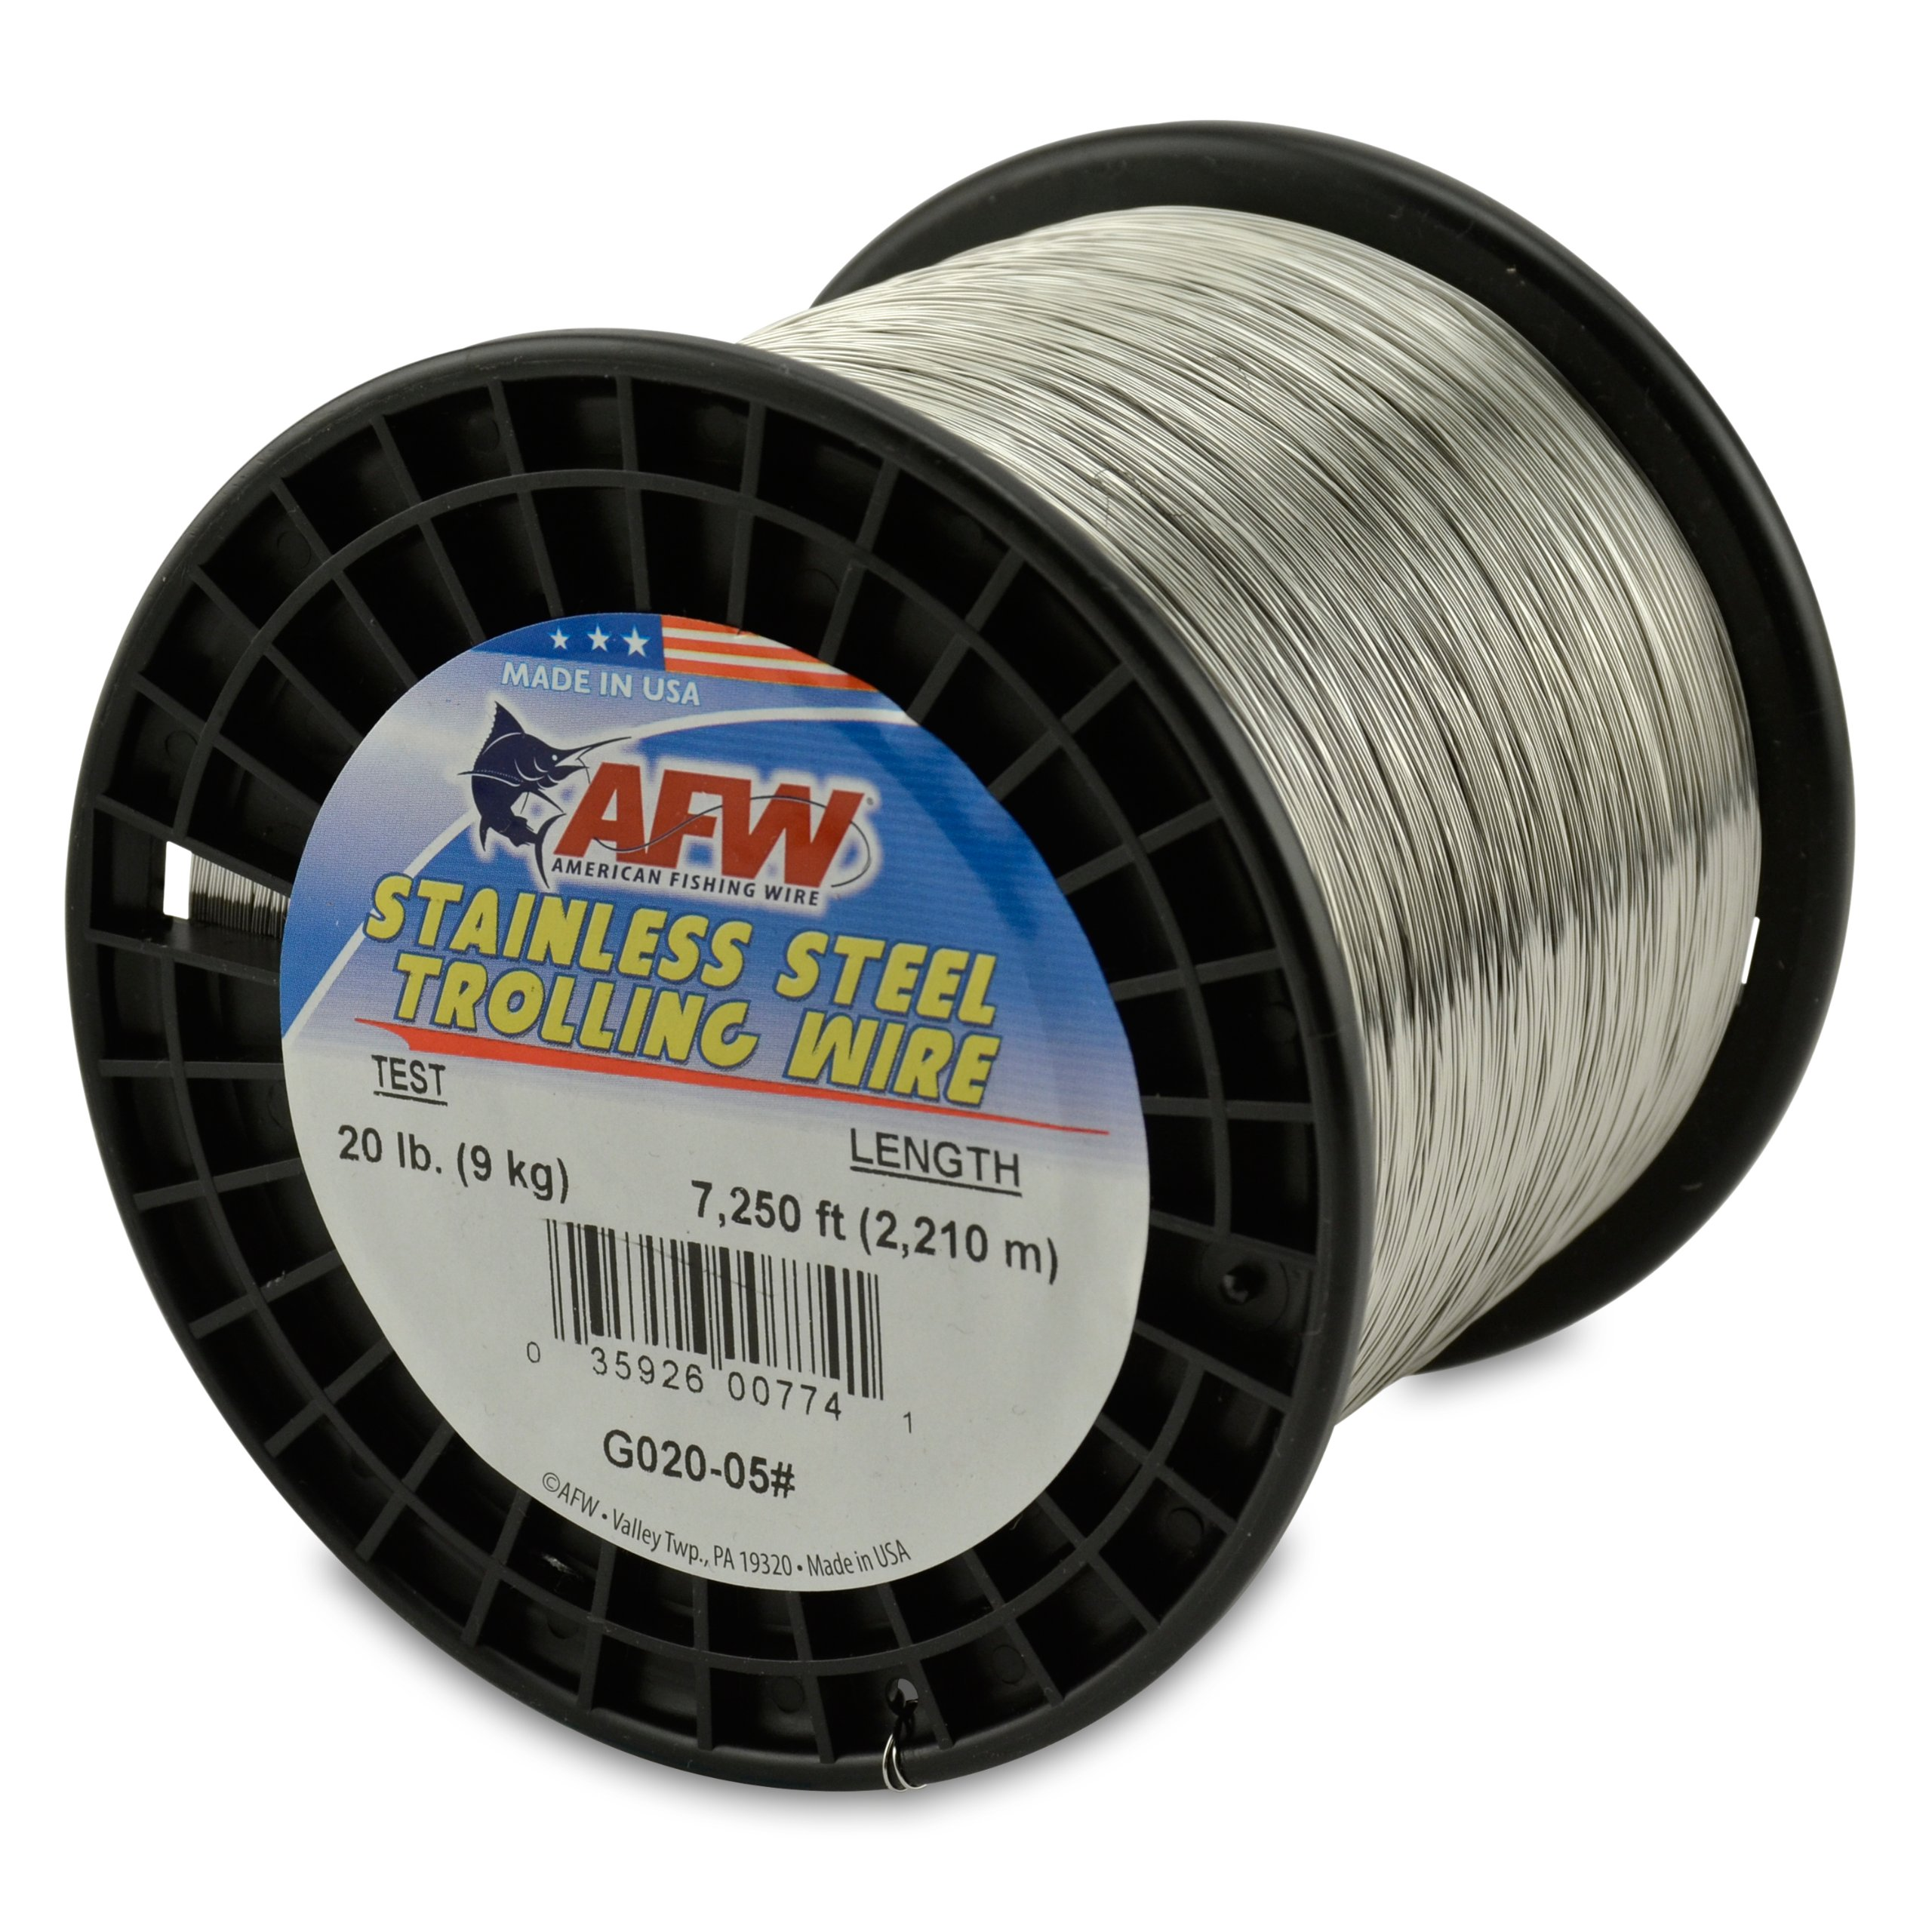 American Fishing Wire Stainless Steel Trolling Wire, 20-Pound Test/0.41mm Dia/2209m